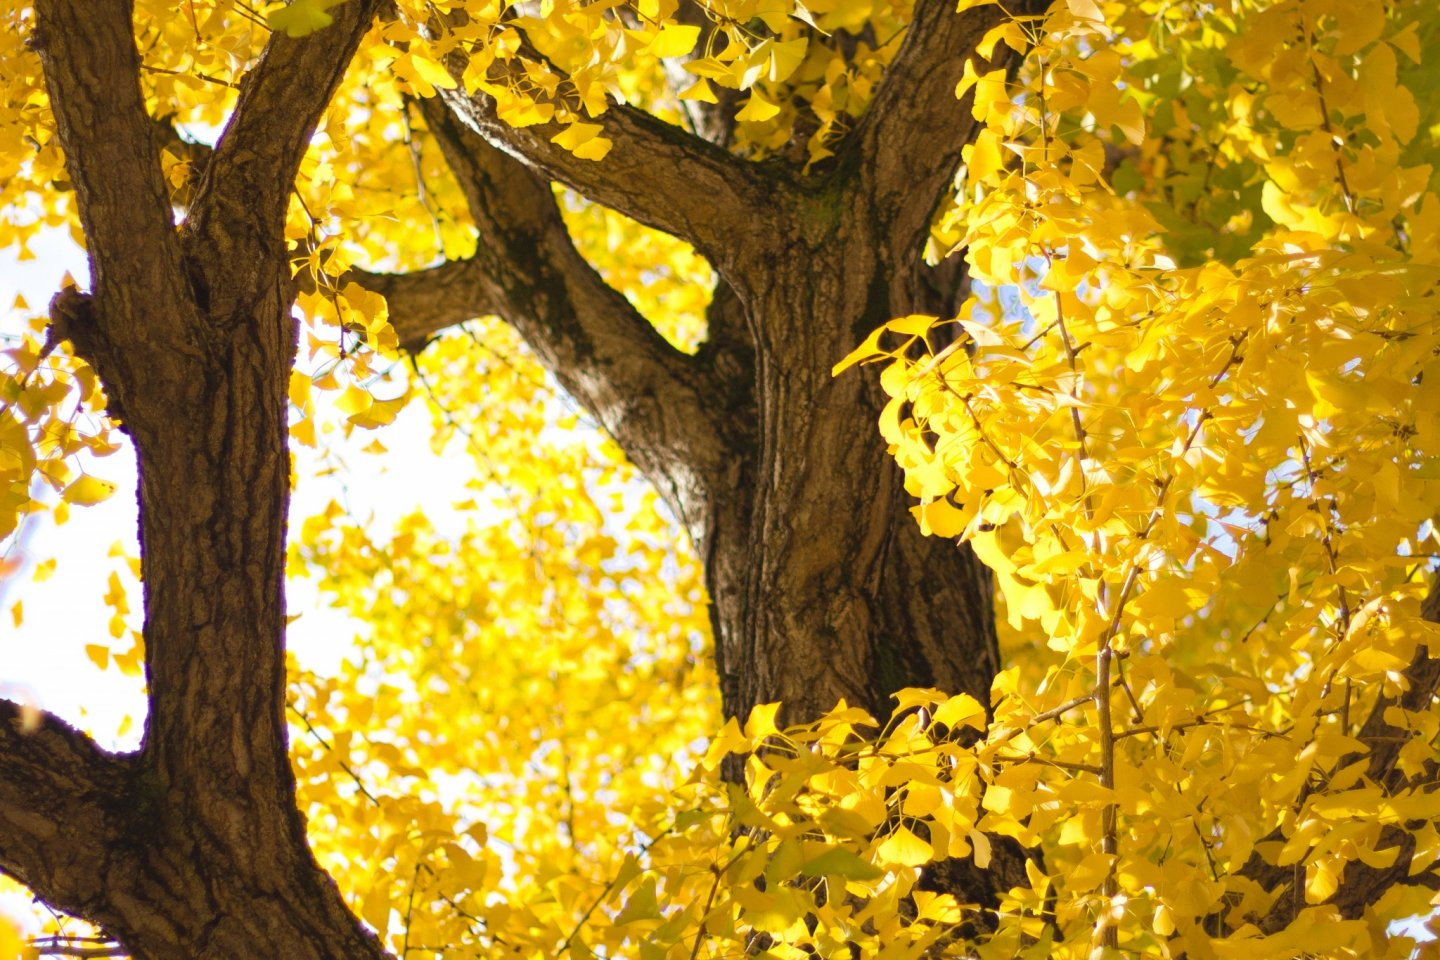 A closer look at the golden leaves